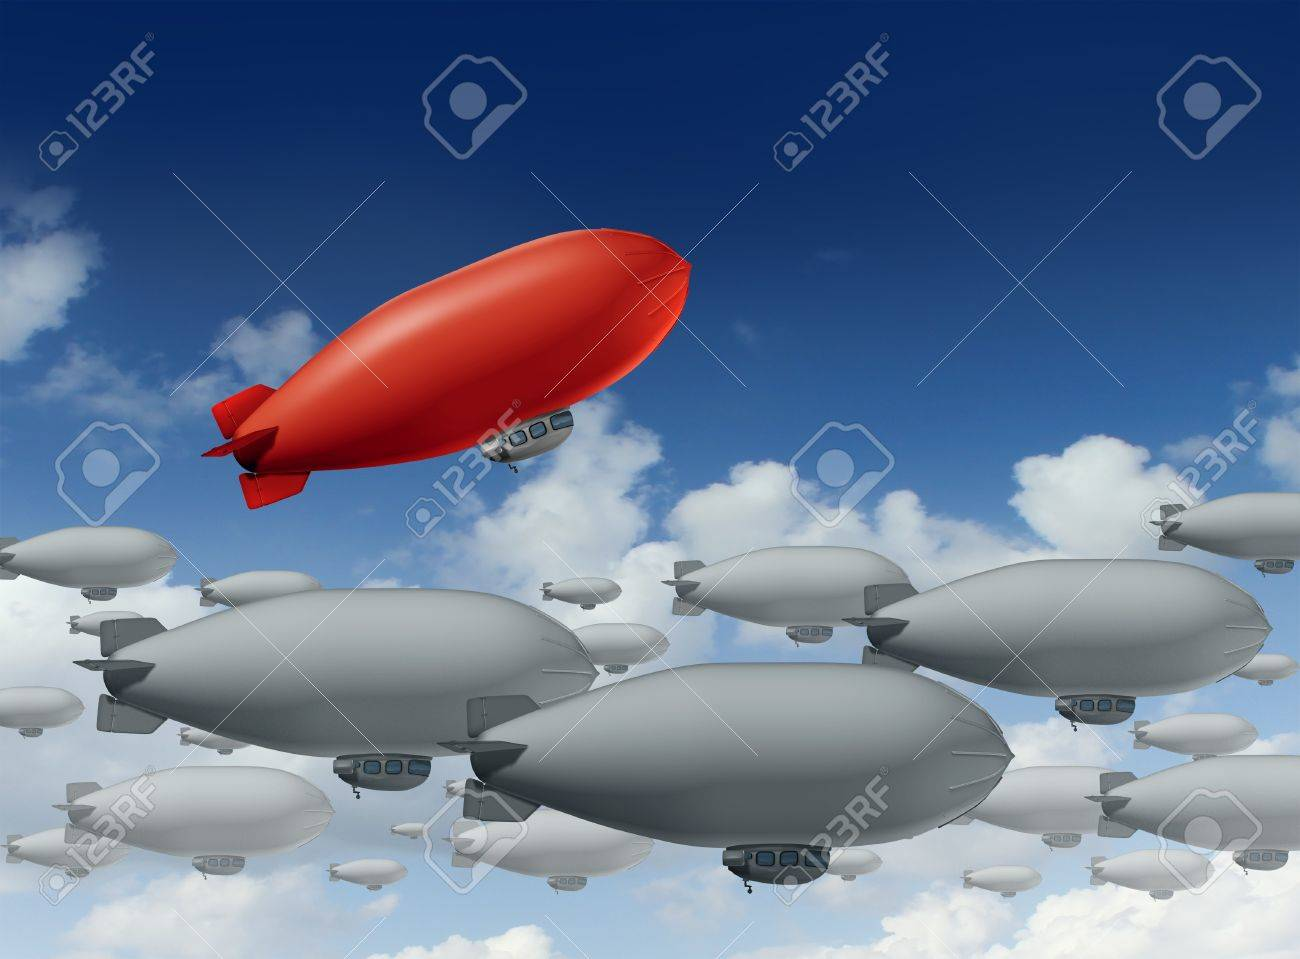 Standing out from the crowd with a group of grey blimps going in a straight direction and a leading red blimp going up as a special visionary individual with a success strategy on a sky Stock Photo - 17229323